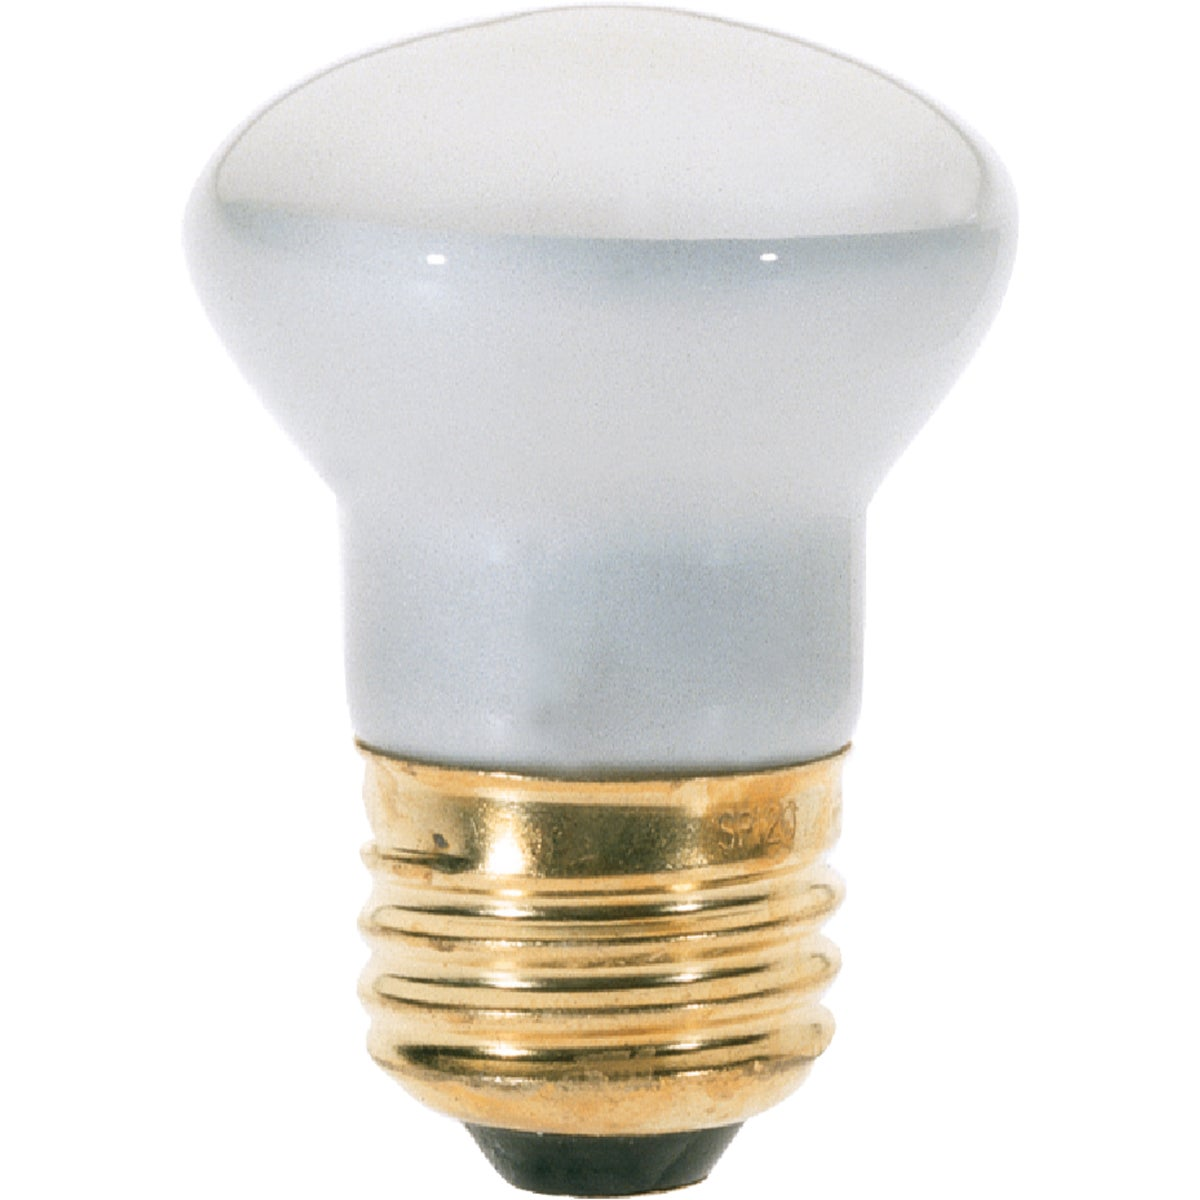 40W MED REFLECTOR BULB - 03604 by Westinghouse Lightng